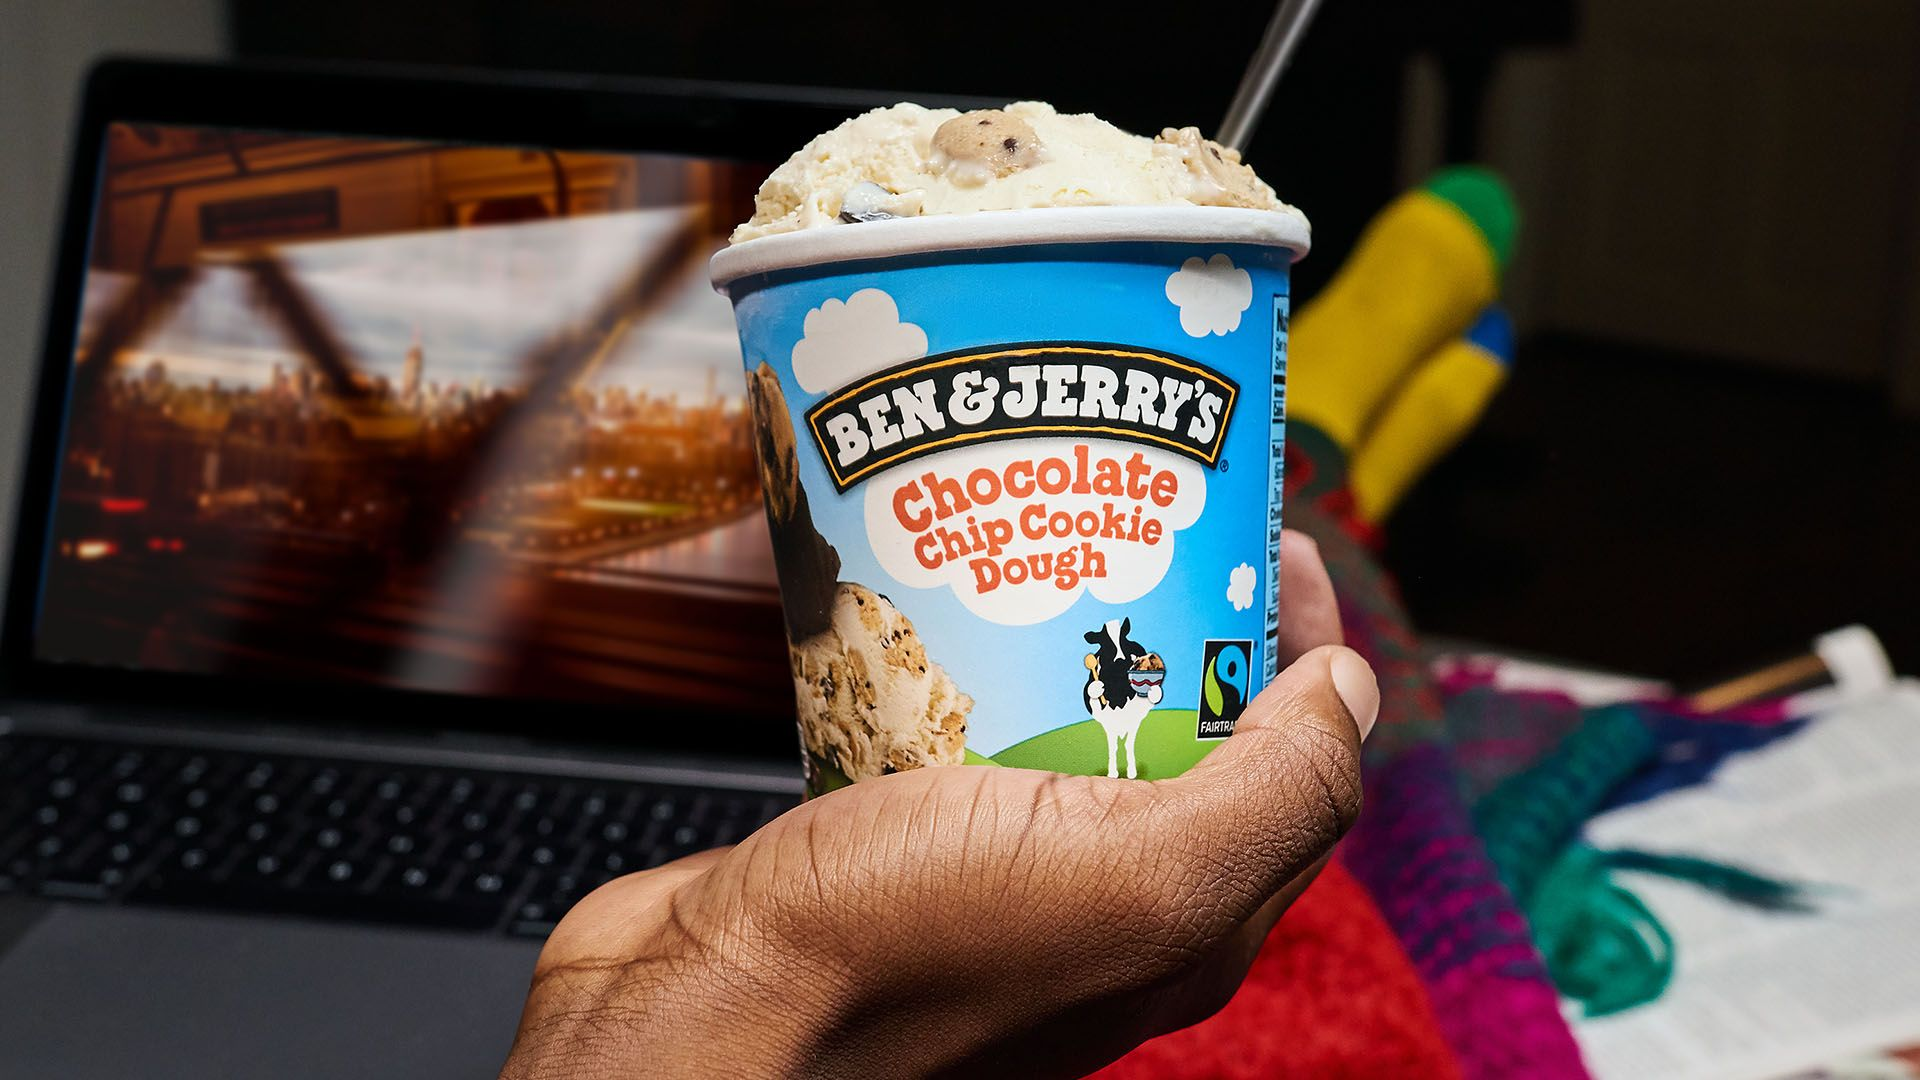 A tub of Ben and Jerry's Chocolate Cookie Dough